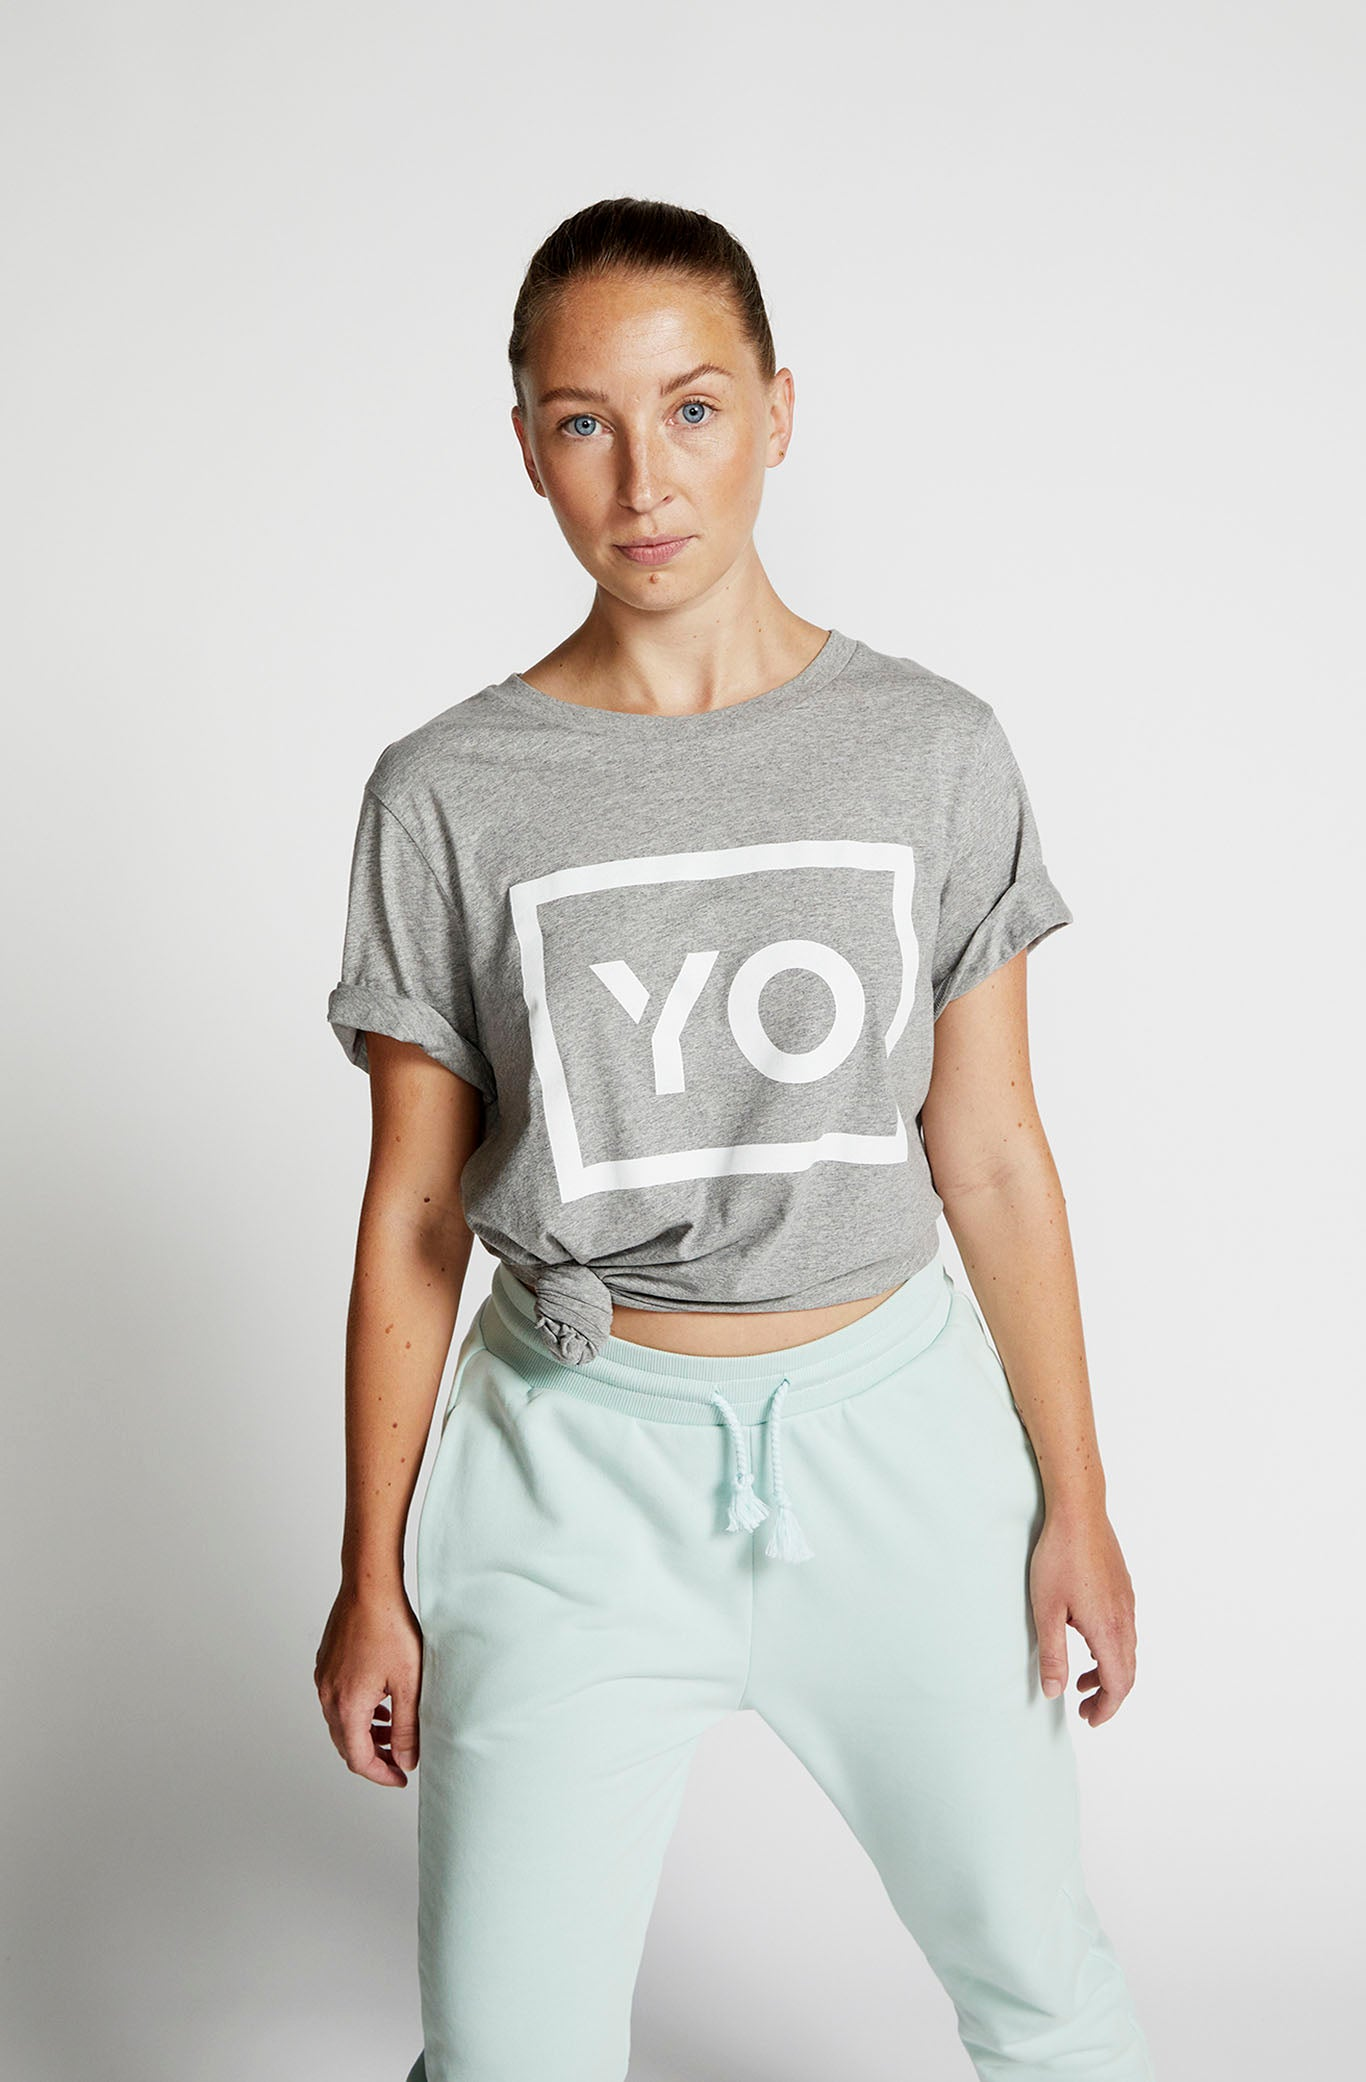 JACOB TEE 2 - YO COLLECTION 2.0 - GREY